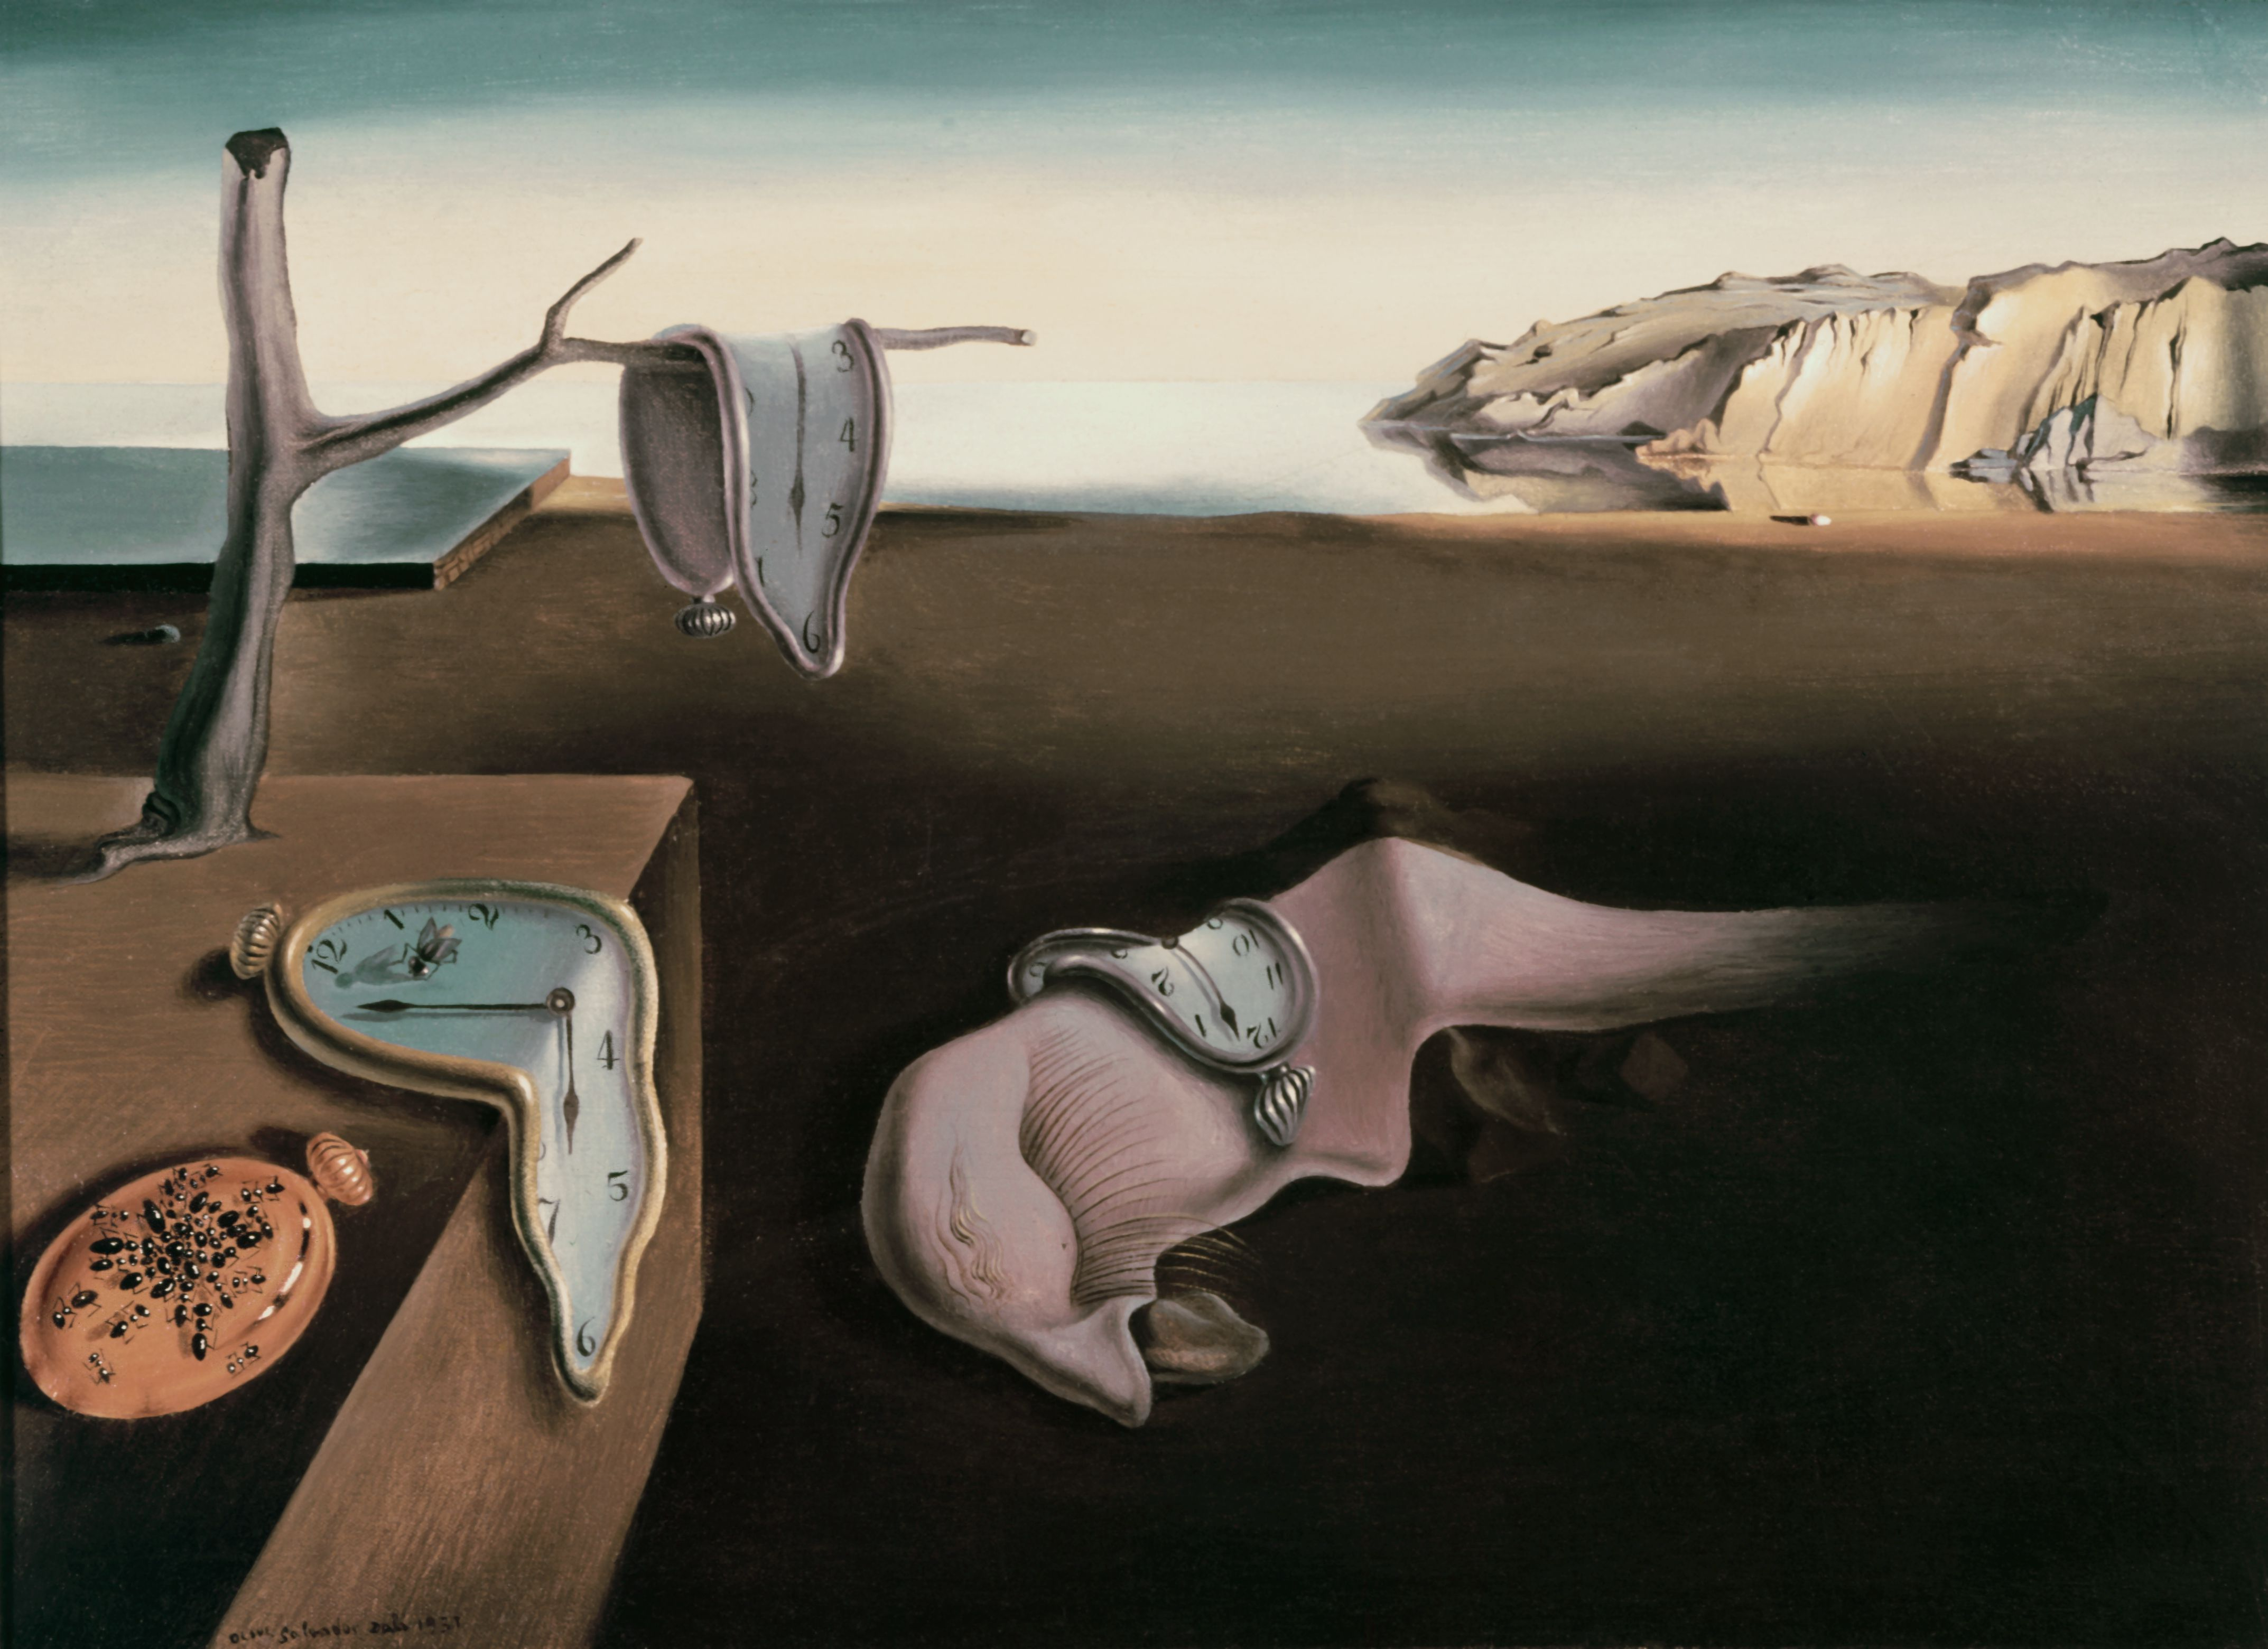 Painting of melting watches in a barren landscape with distant cliffs and ocean.